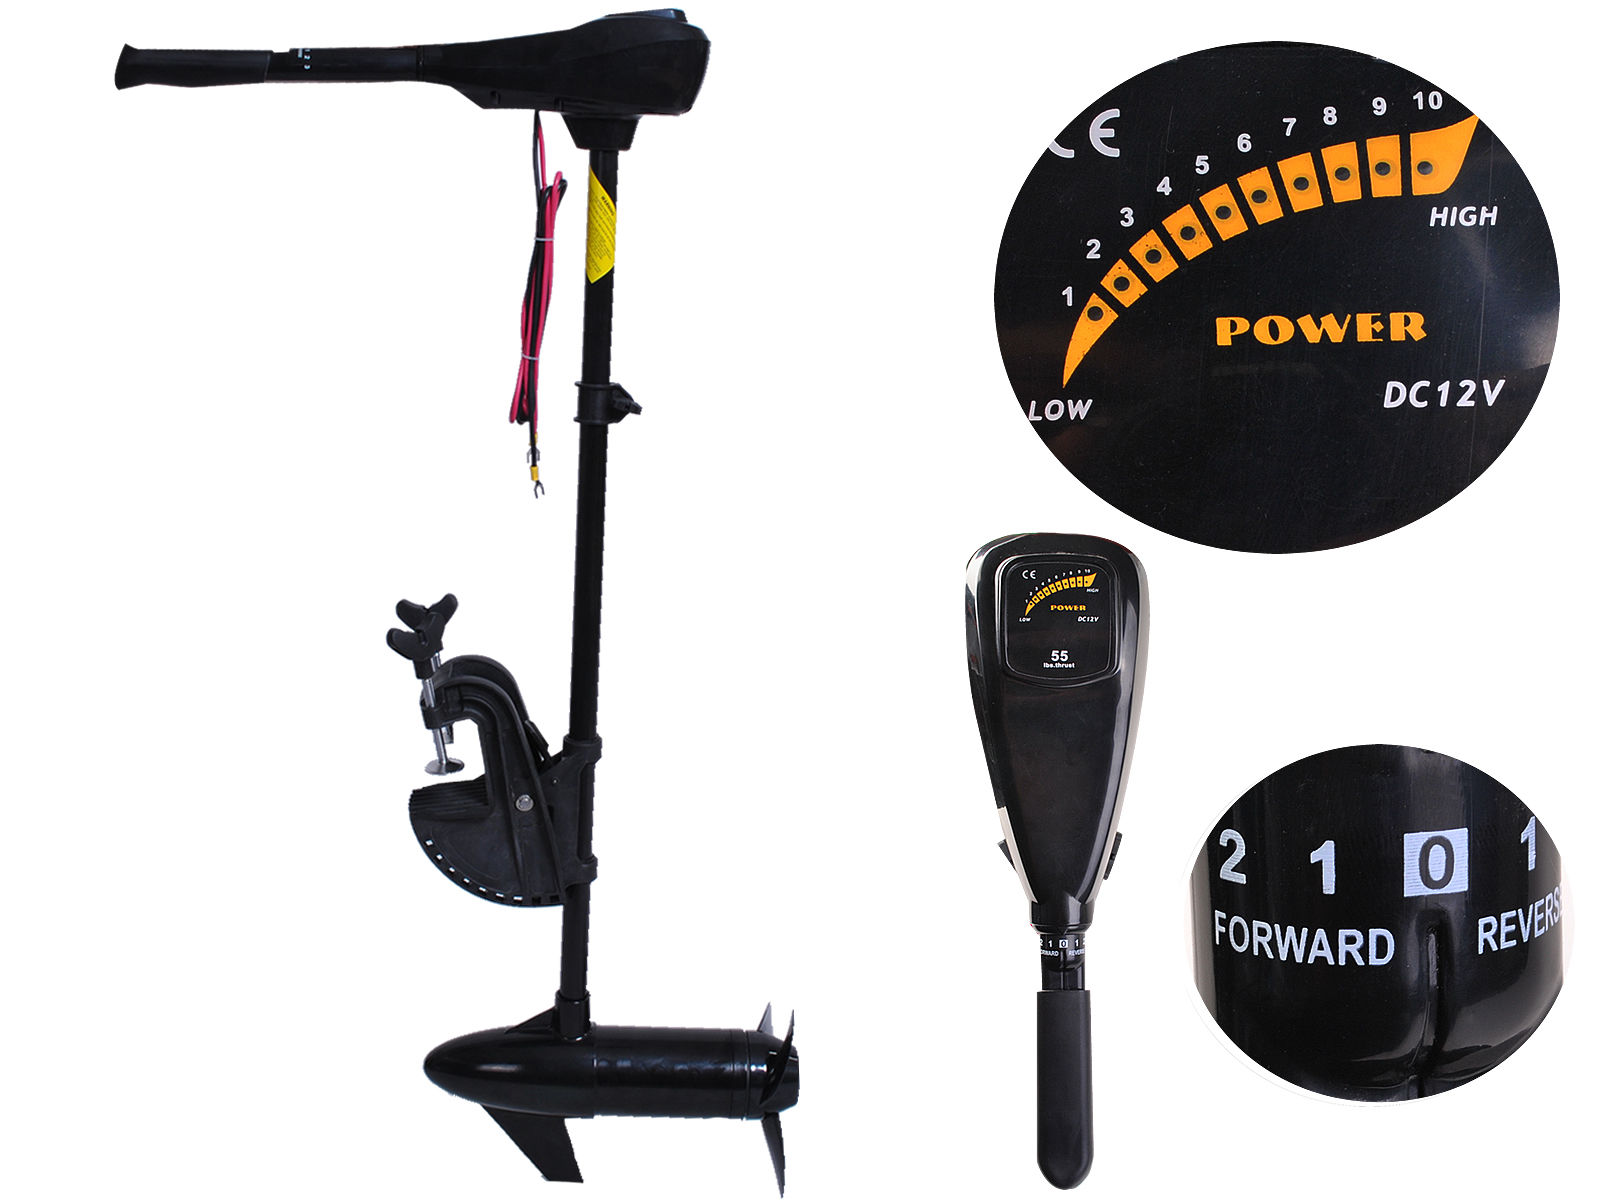 "Costway New 55lbs Freshwater Transom Mounted Trolling Motor 36"" Shaft by Costway"